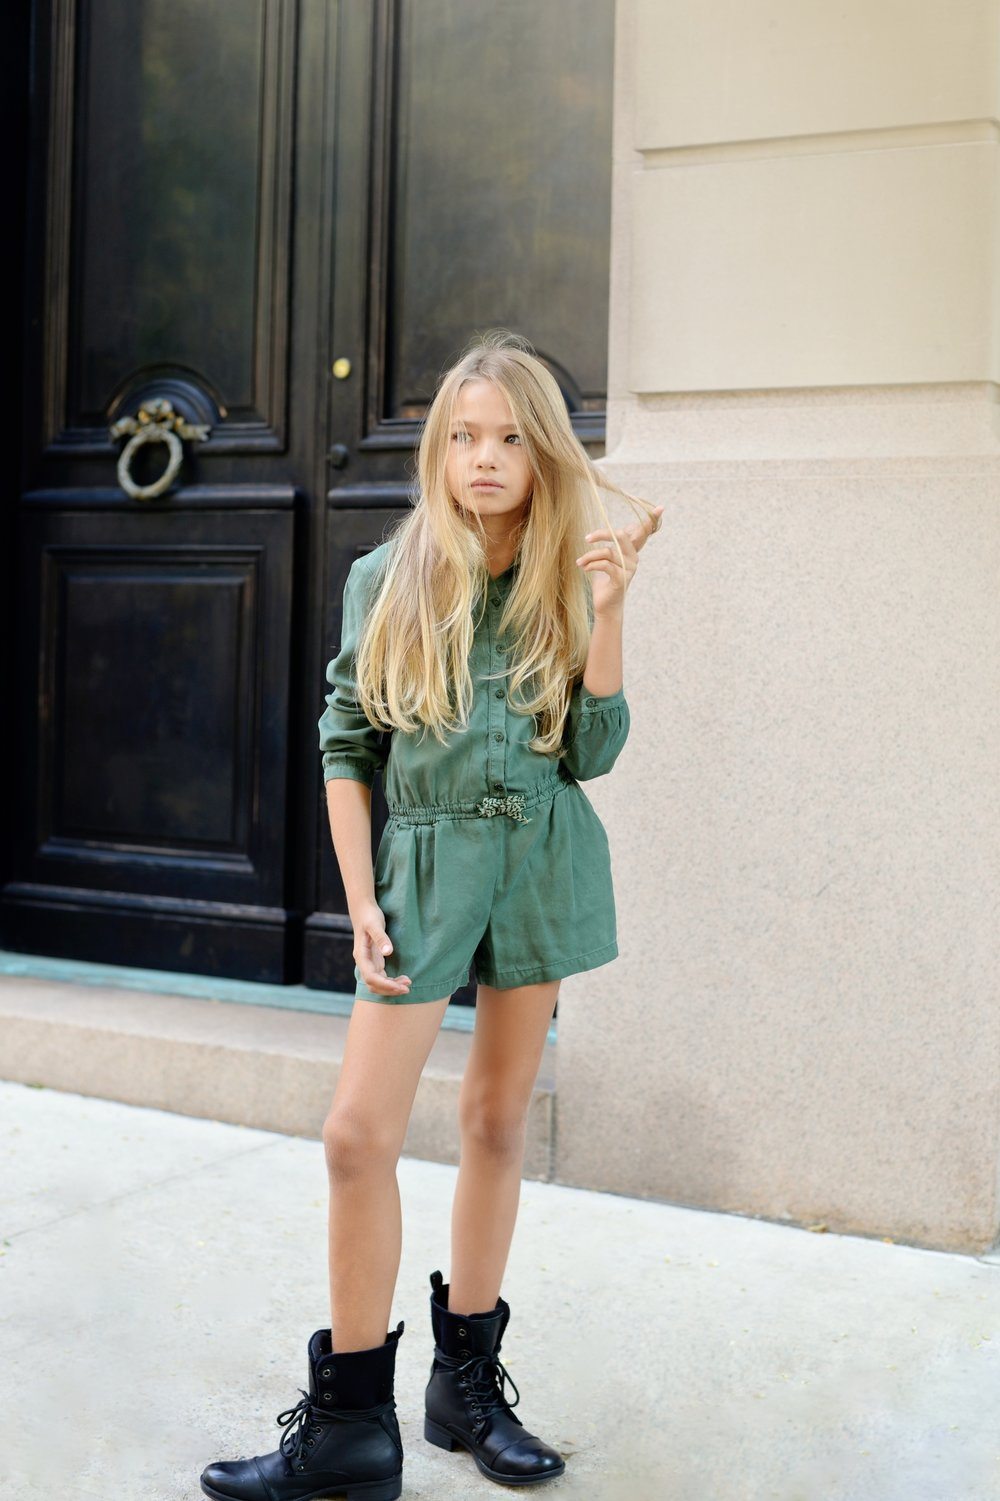 Enfant+Street+Style+by+Gina+Kim+Photography-58.jpeg